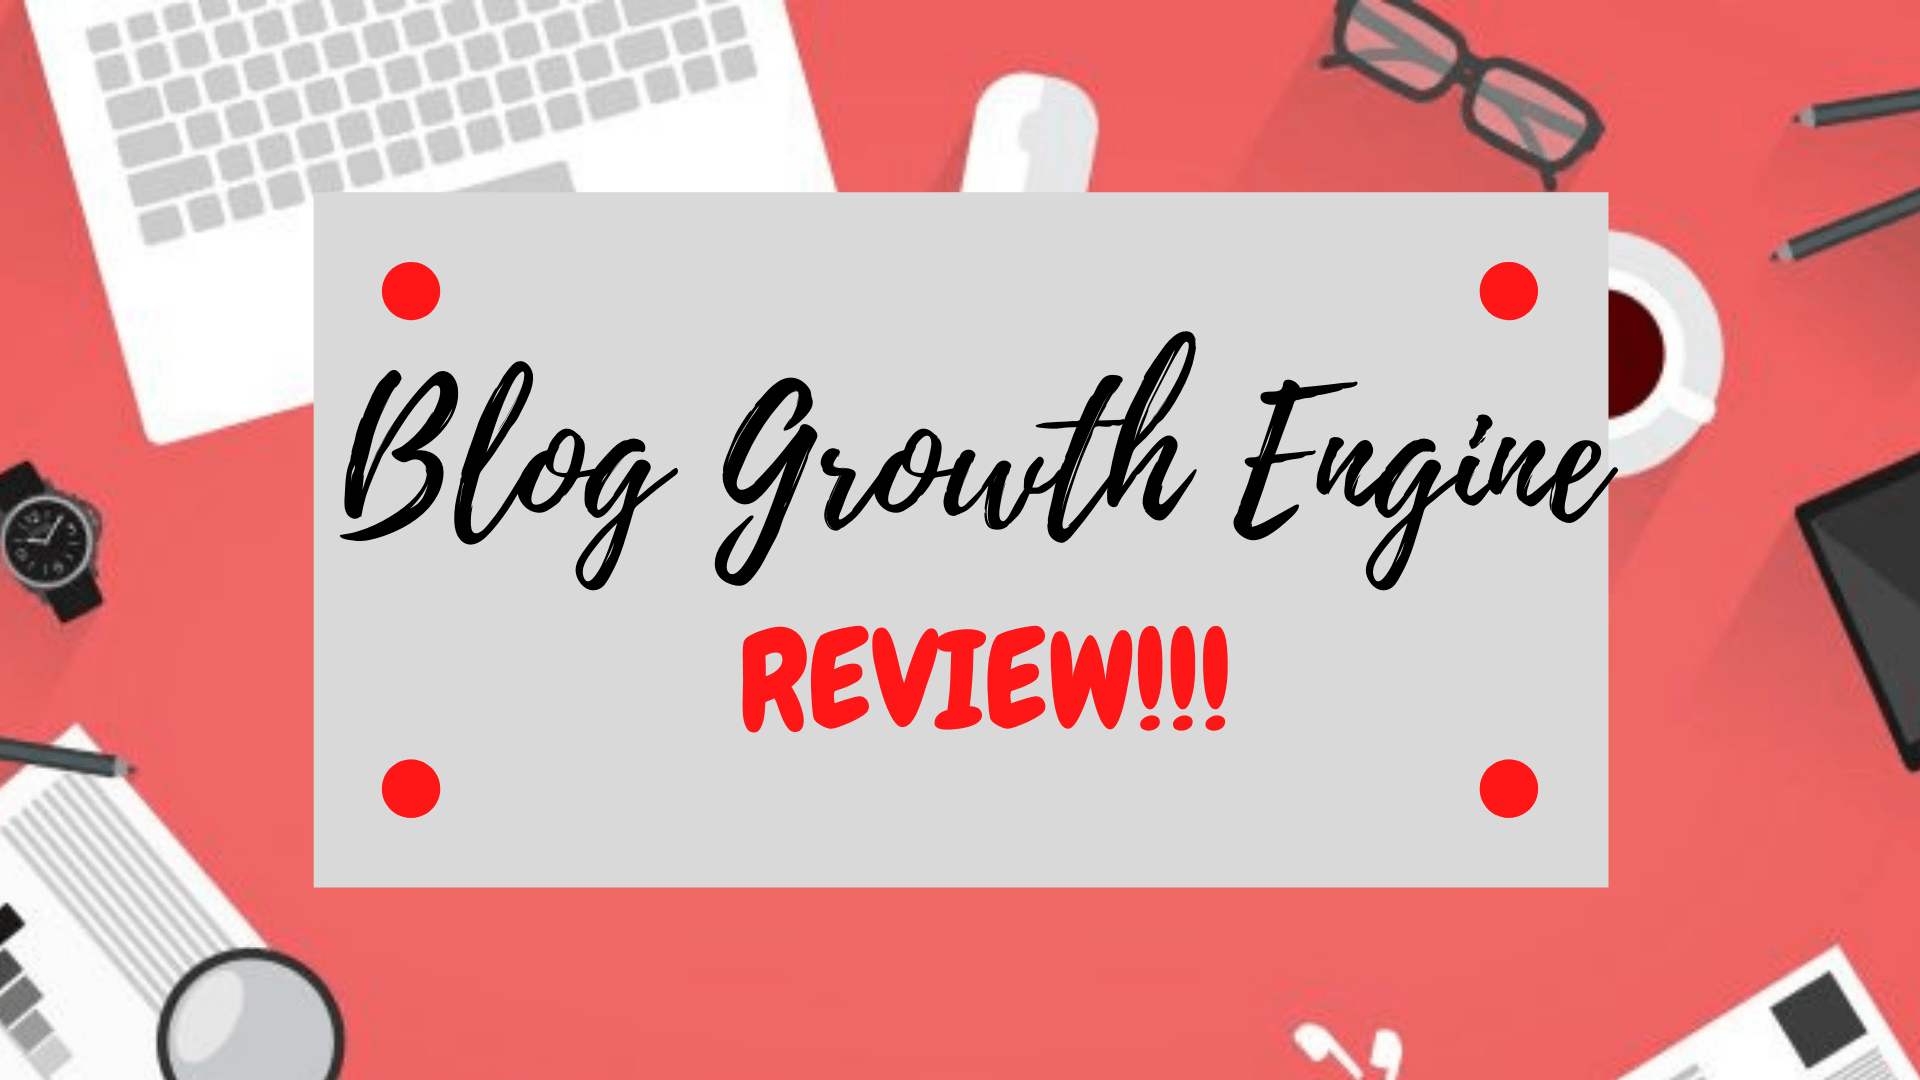 Blog Growth Engine Frontpage